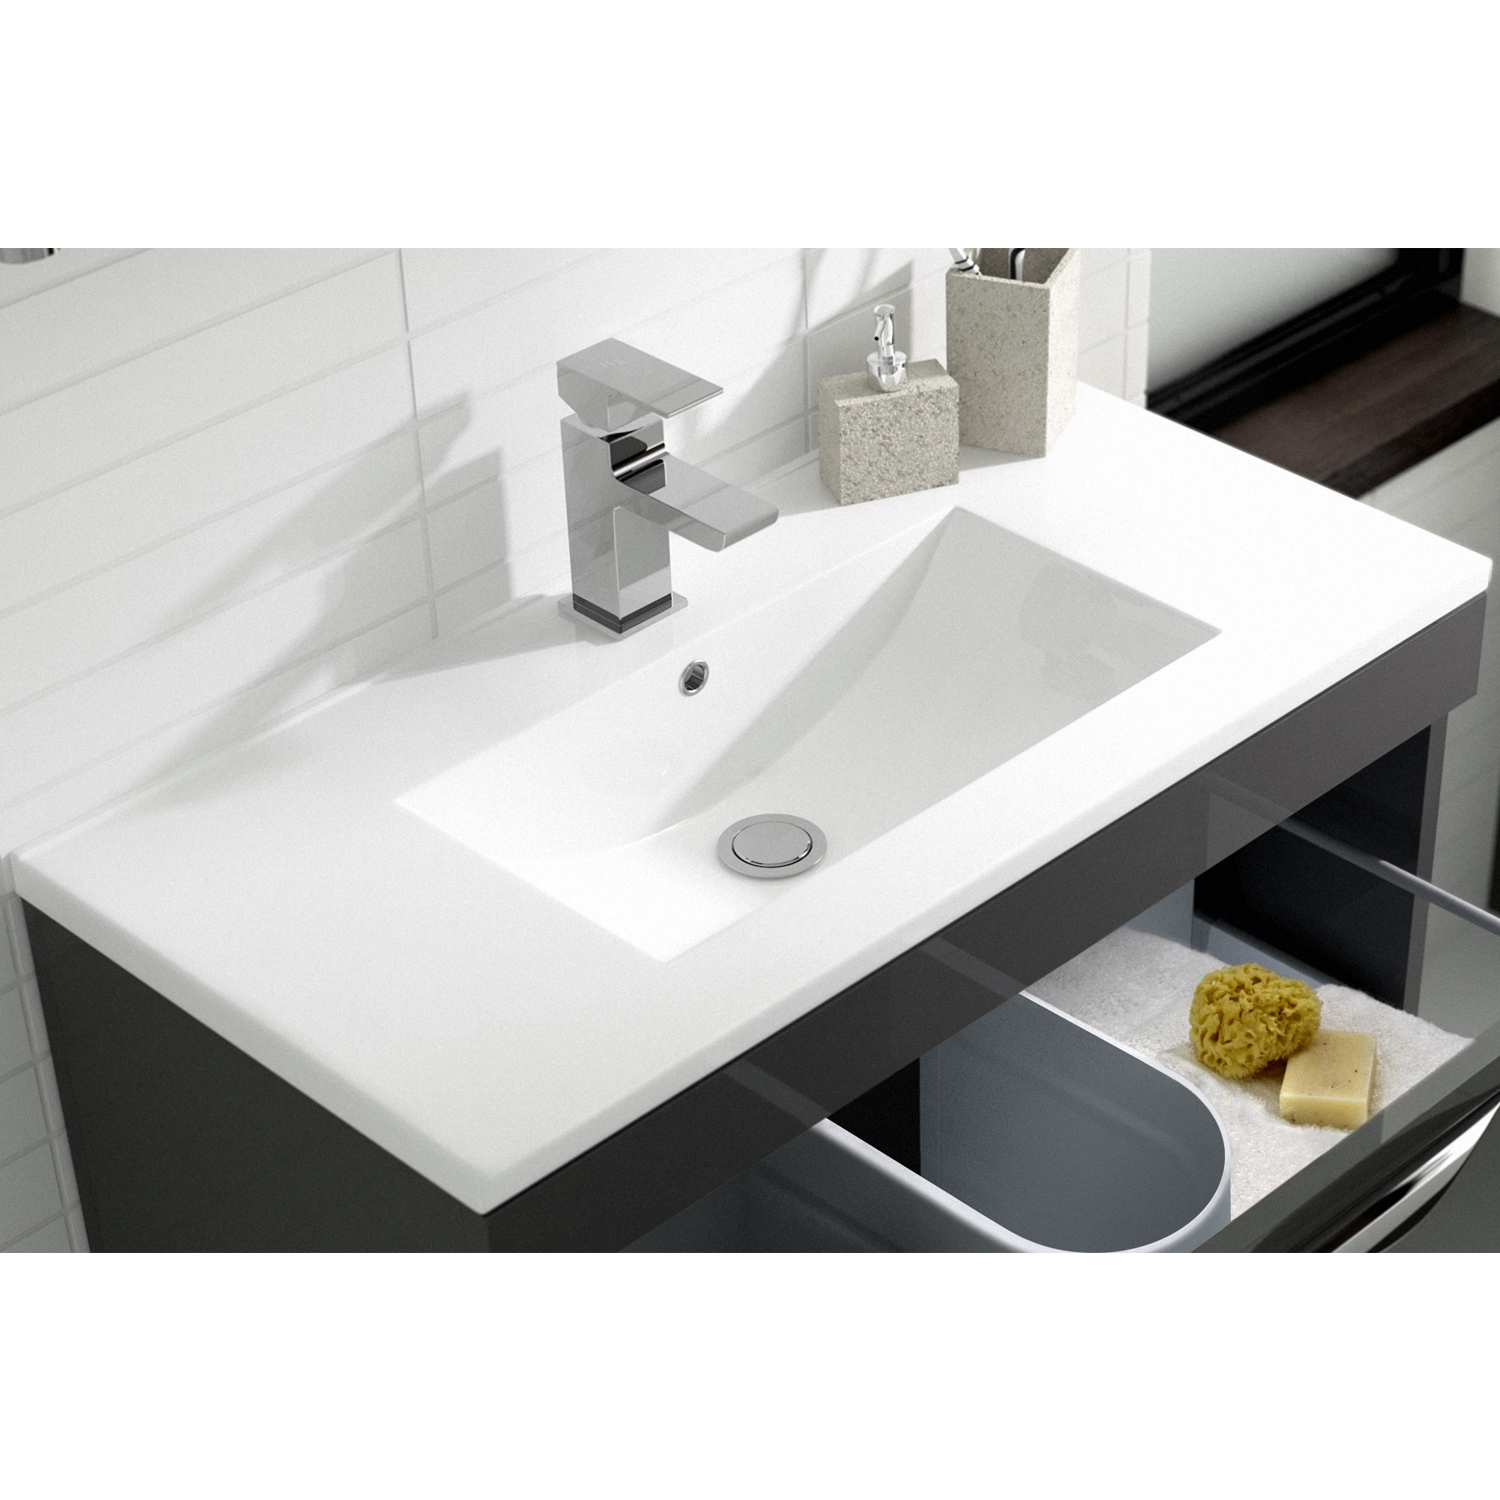 Hudson Reed Memoir Floor Standing Vanity Unit with Minimalist Basin 2 600mm W Grey Gloss 1 Tap Hole